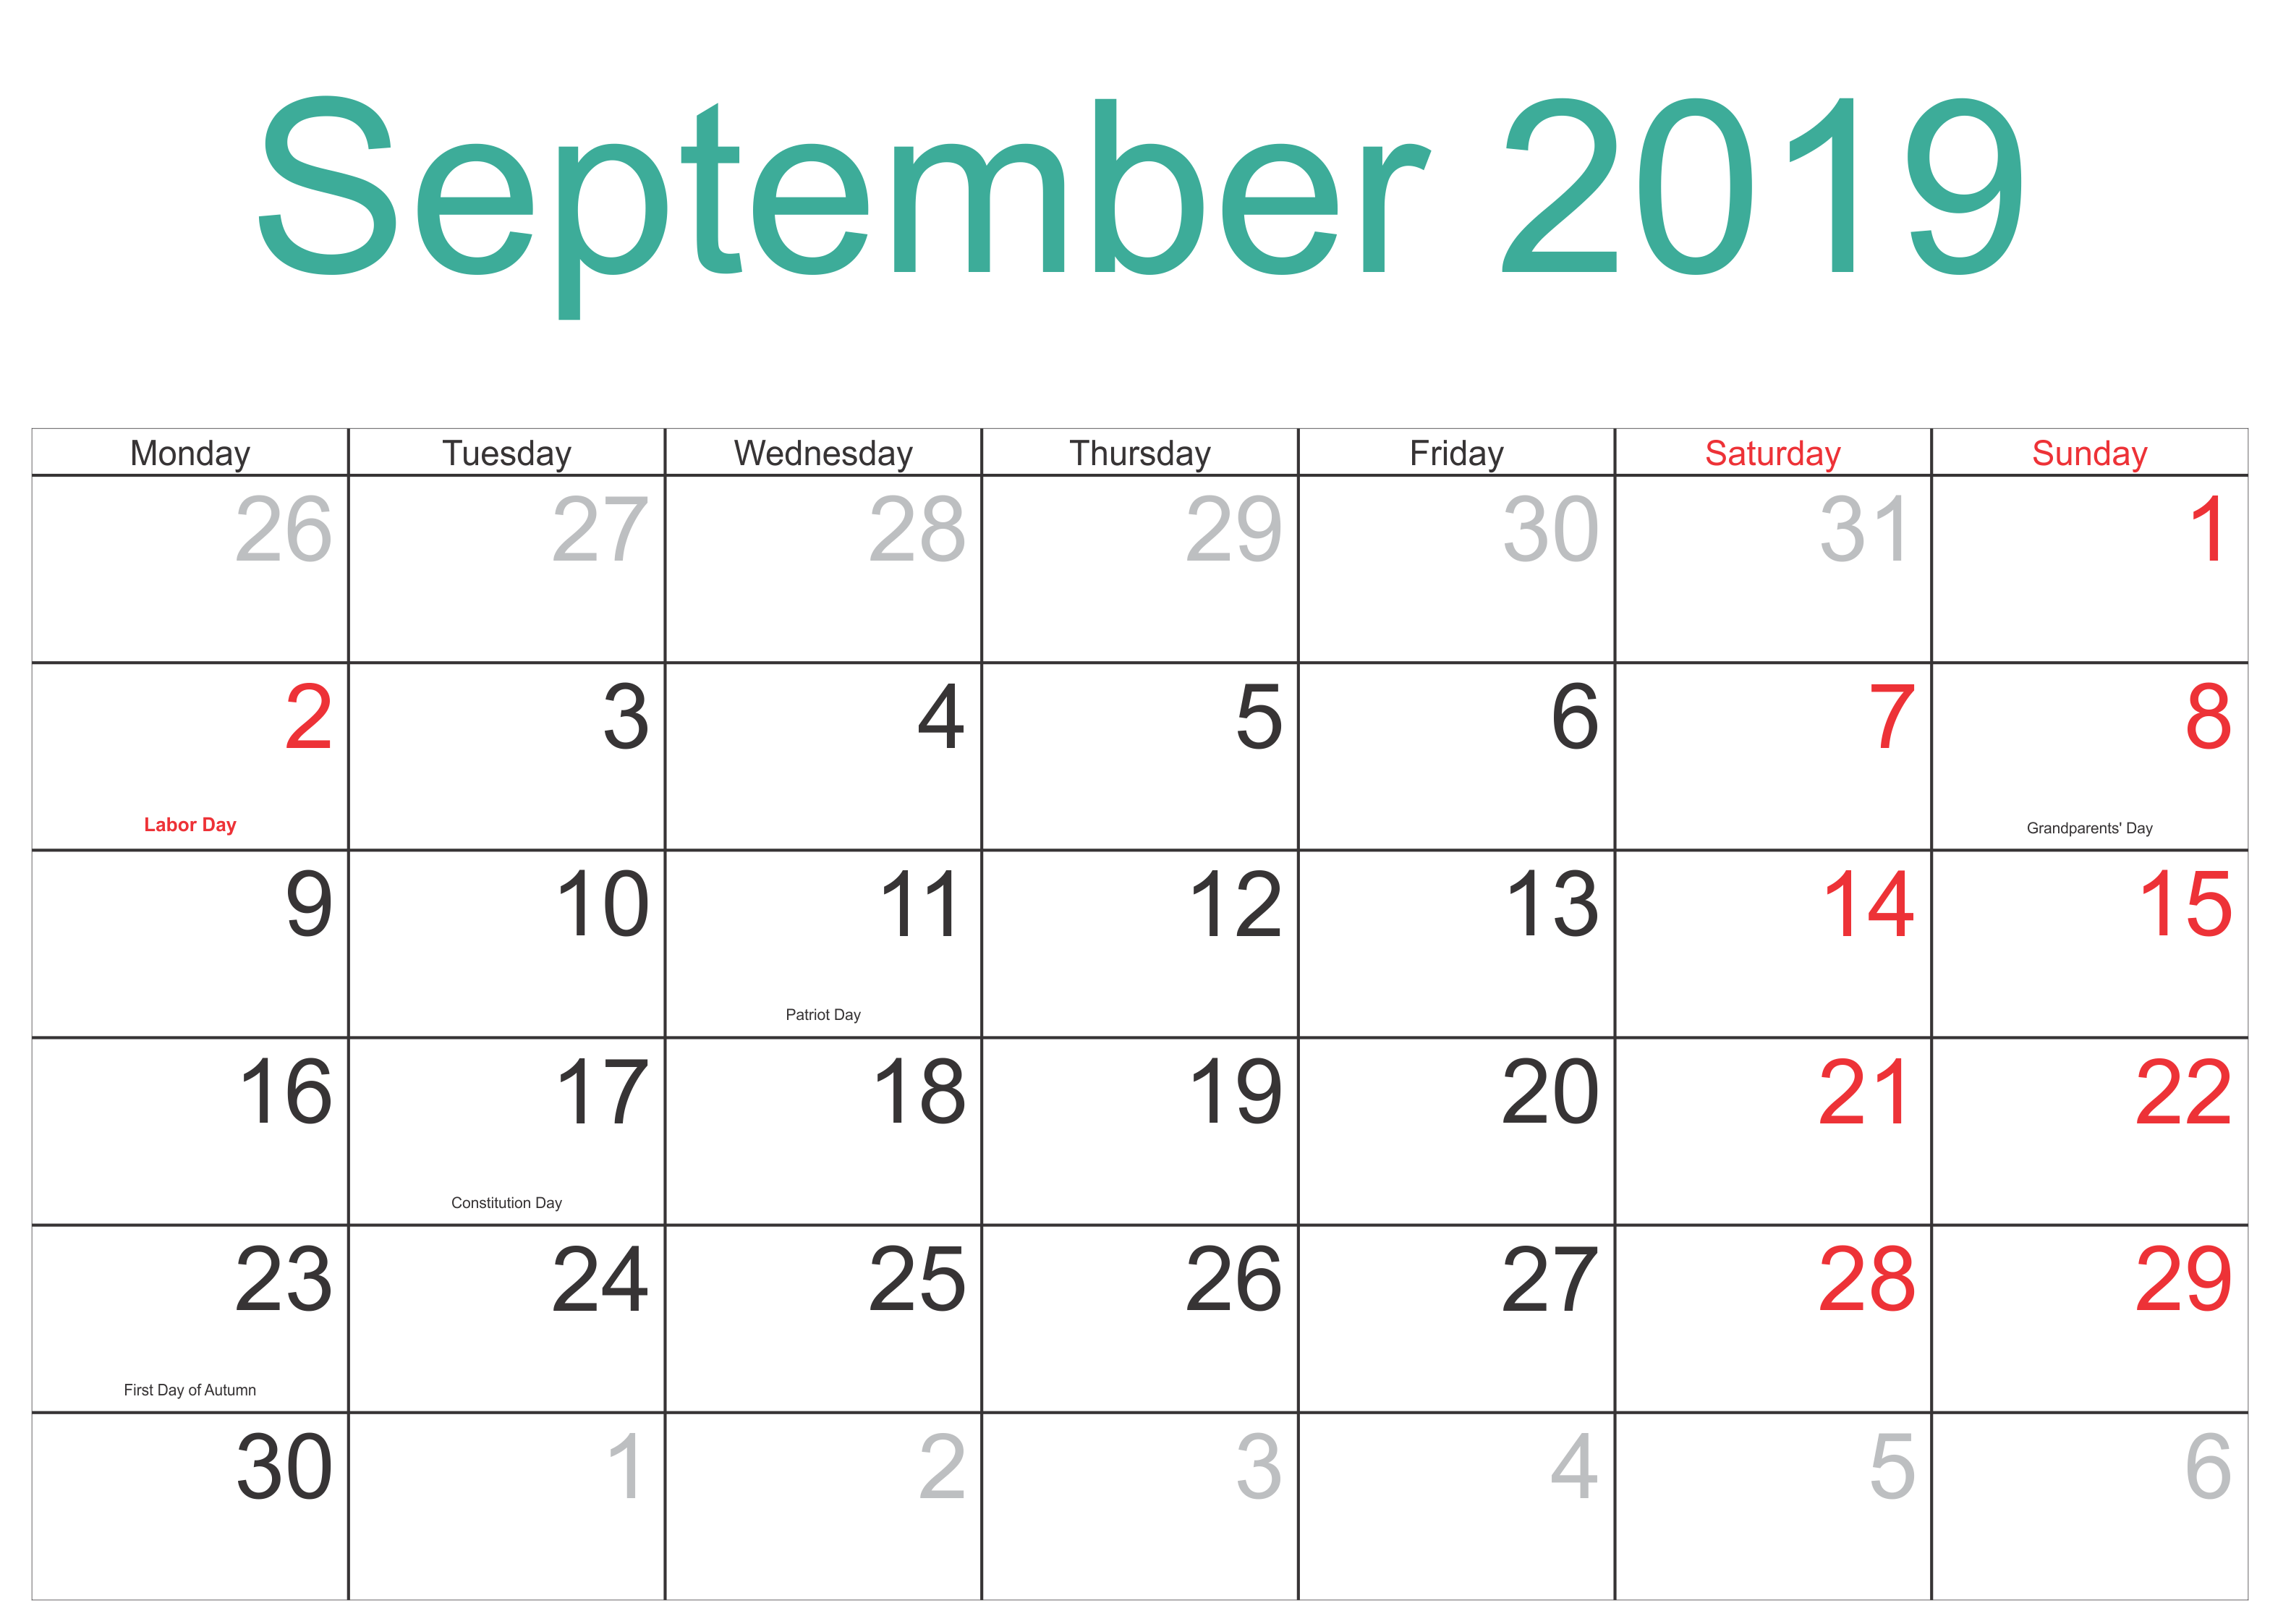 September Holidays 2019 Calendar